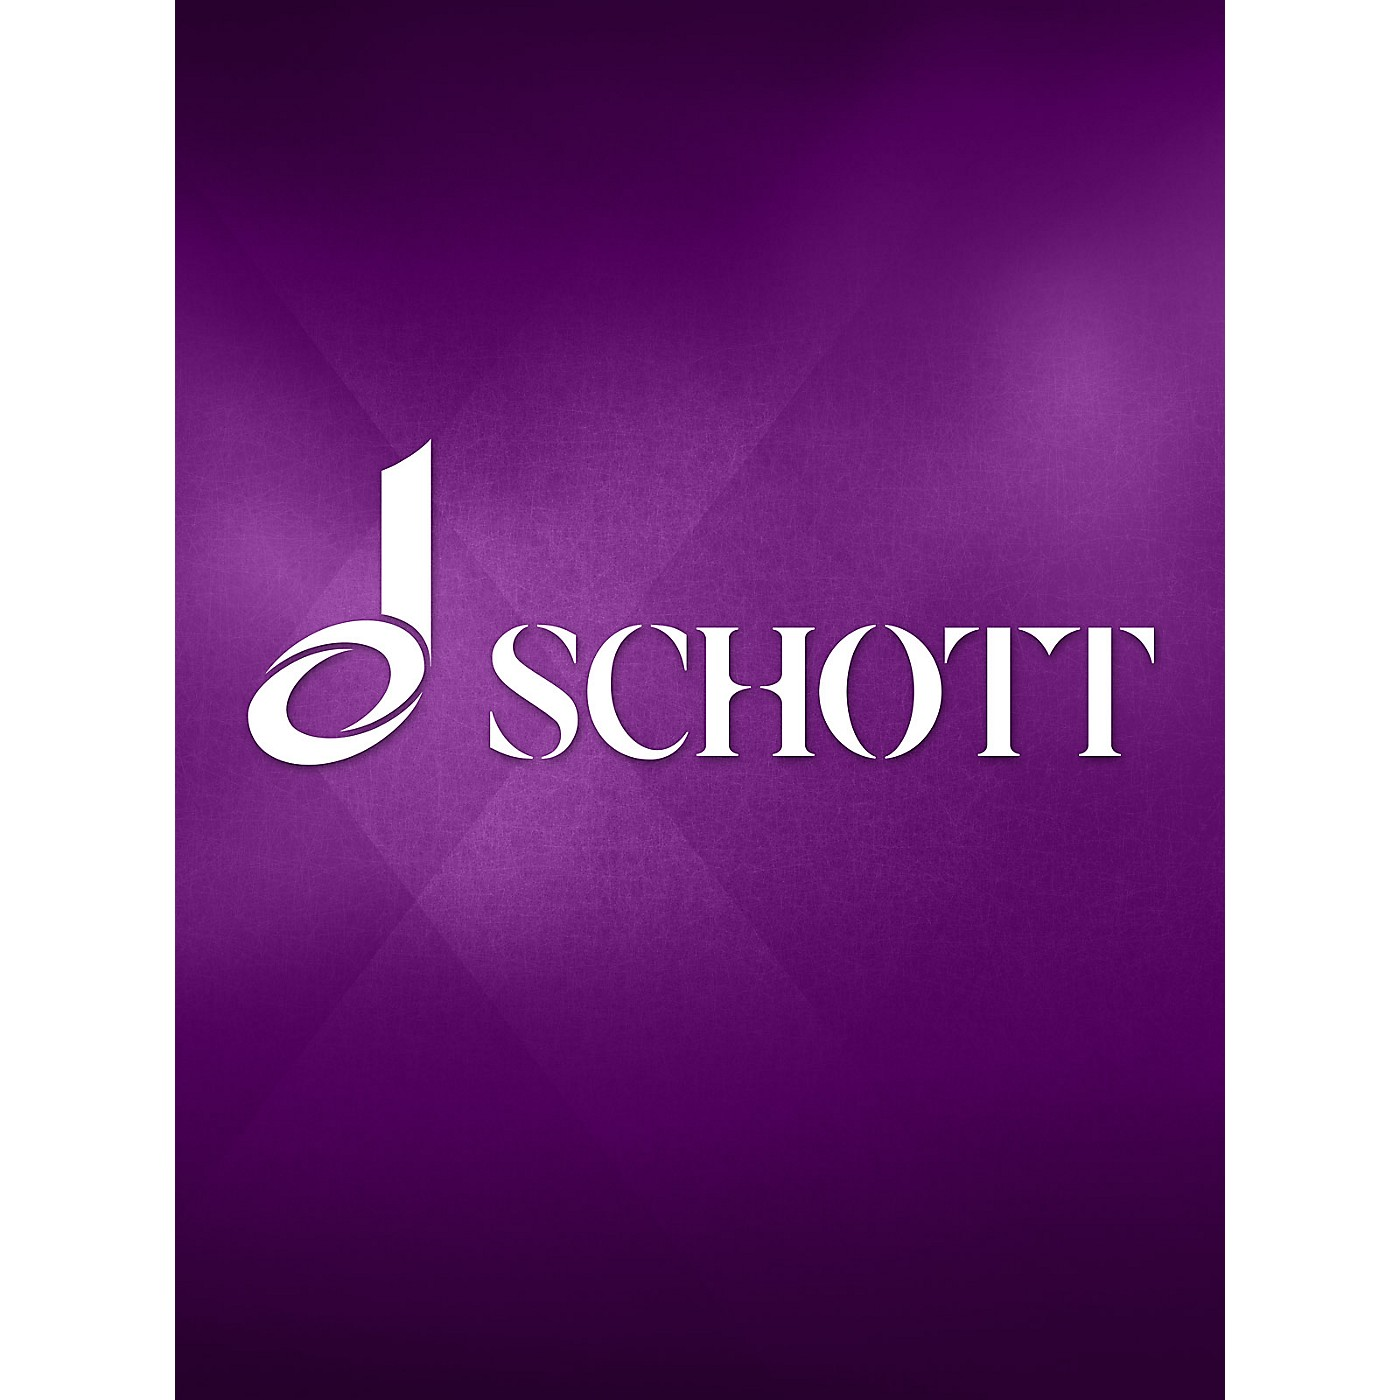 Mobart Music Publications/Schott Helicon Trio for Violin, Cello and Piano (Score) Schott Series Softcover Composed by Seymour Shifrin thumbnail